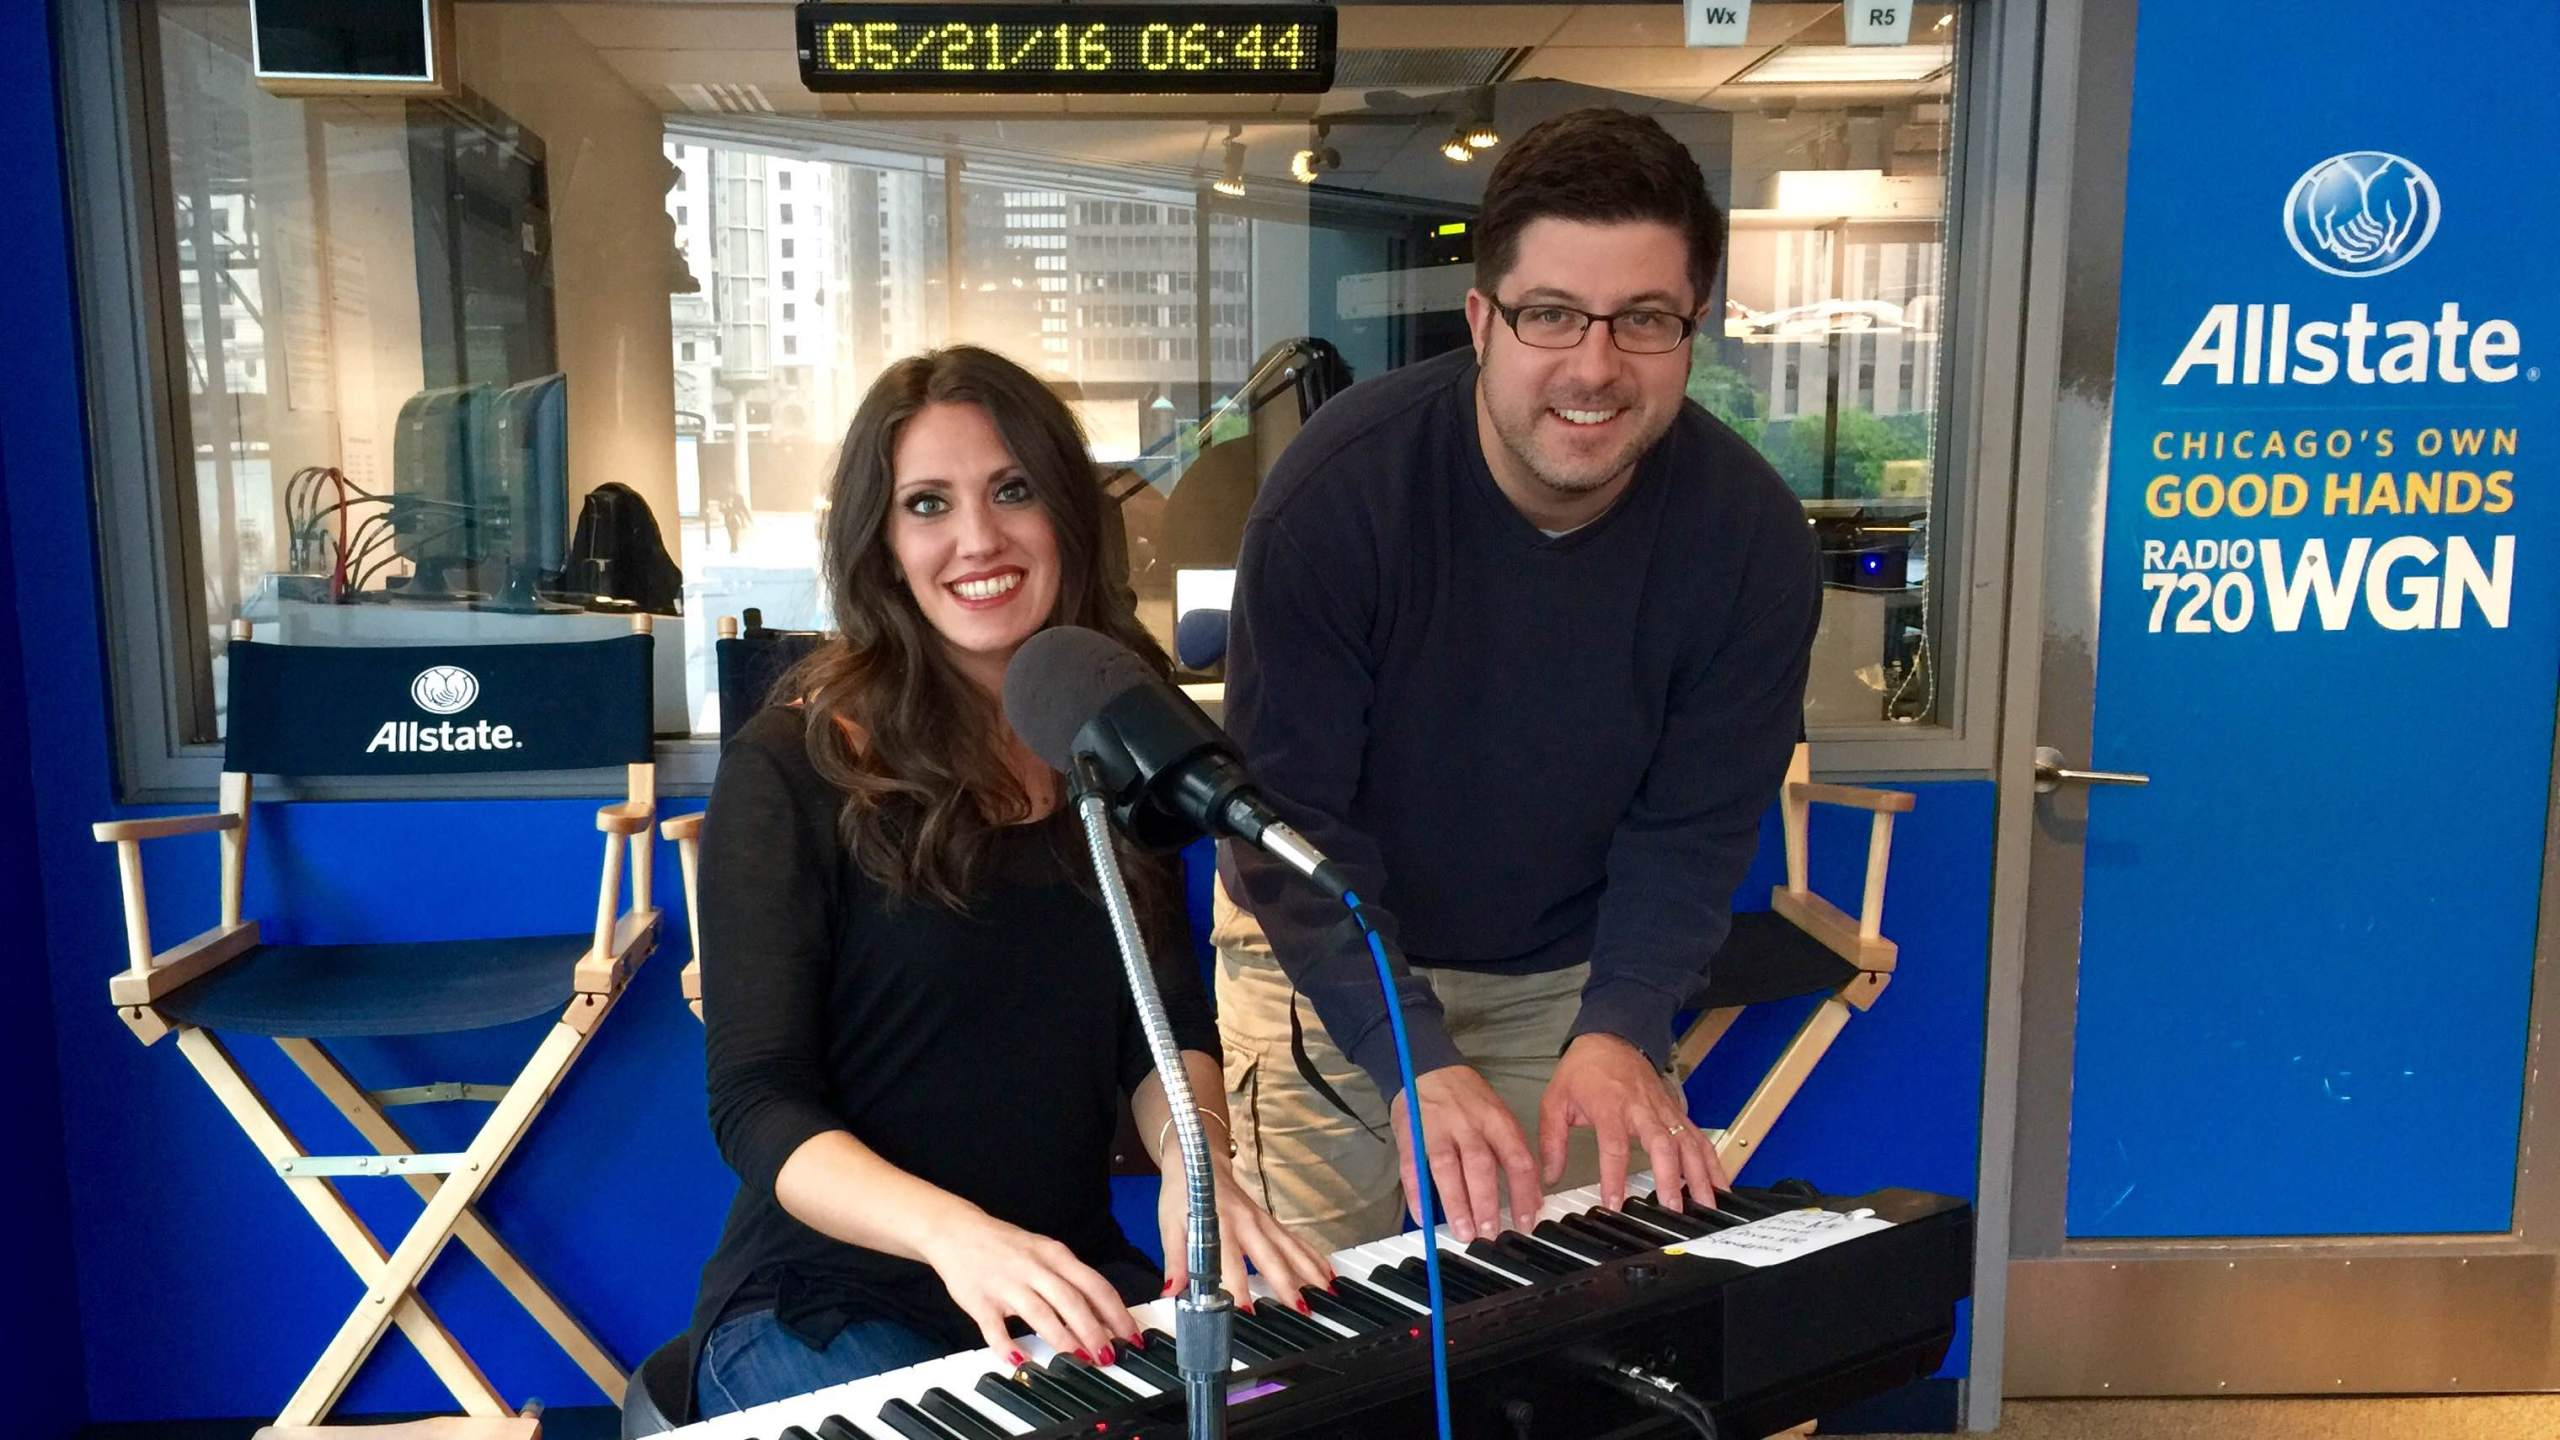 Local musician Dina Bach previewed her new EP Kiss Me Like That all throughout OTL #501. Fortunately, OTL host Mike Stephen is only posing here.